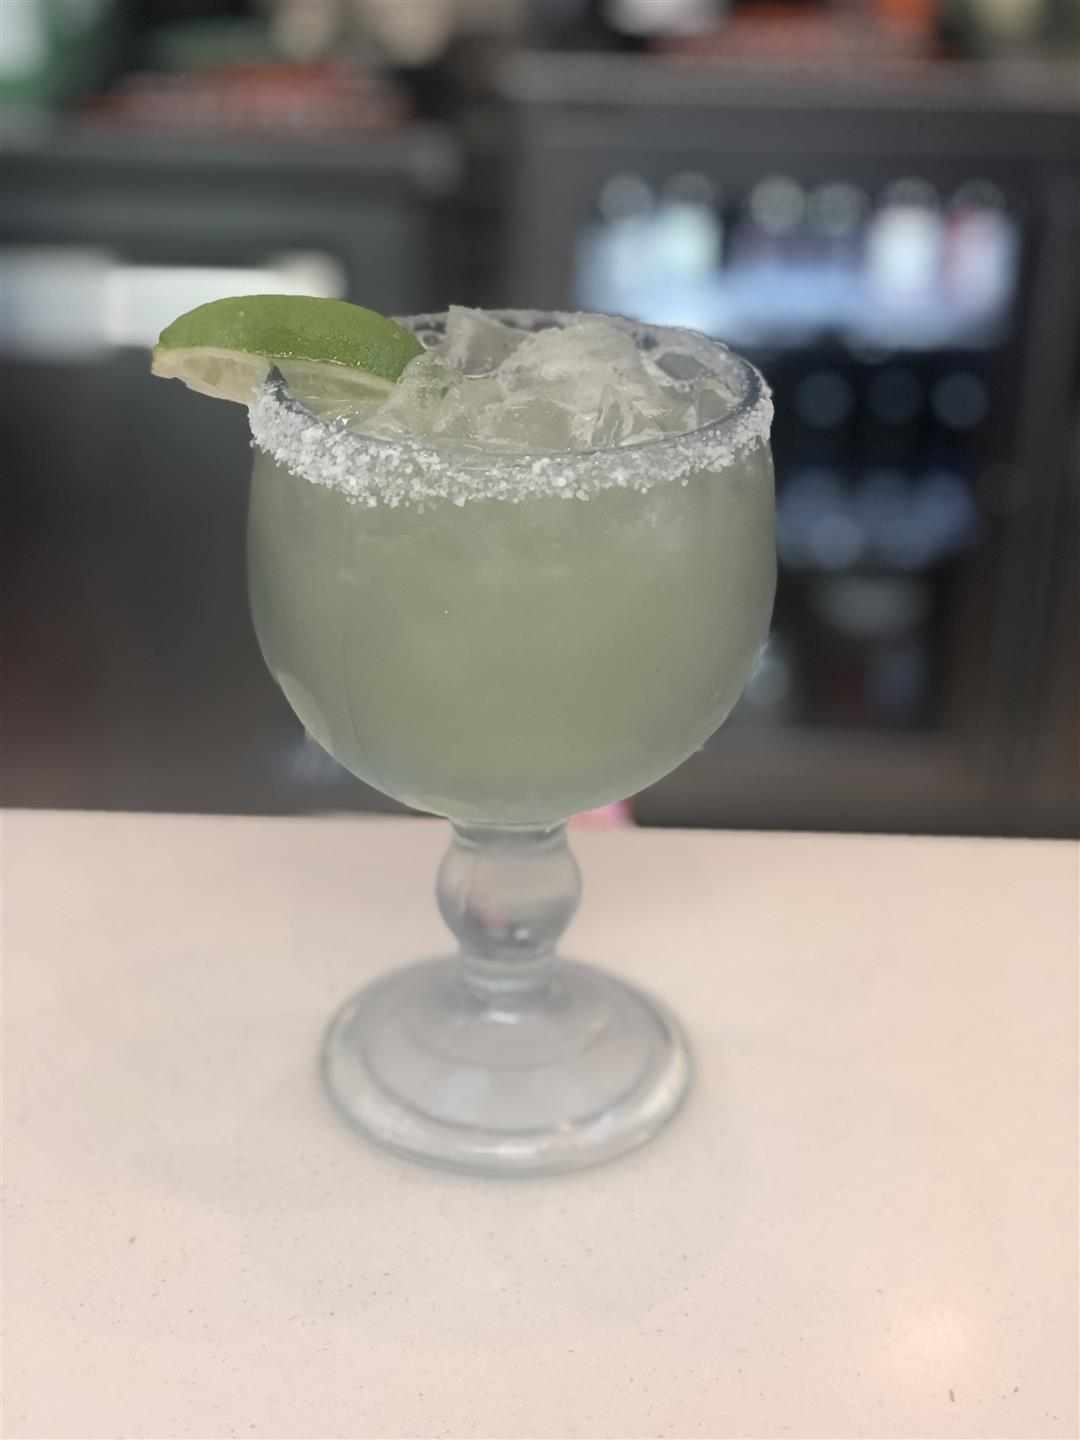 magarita with lime